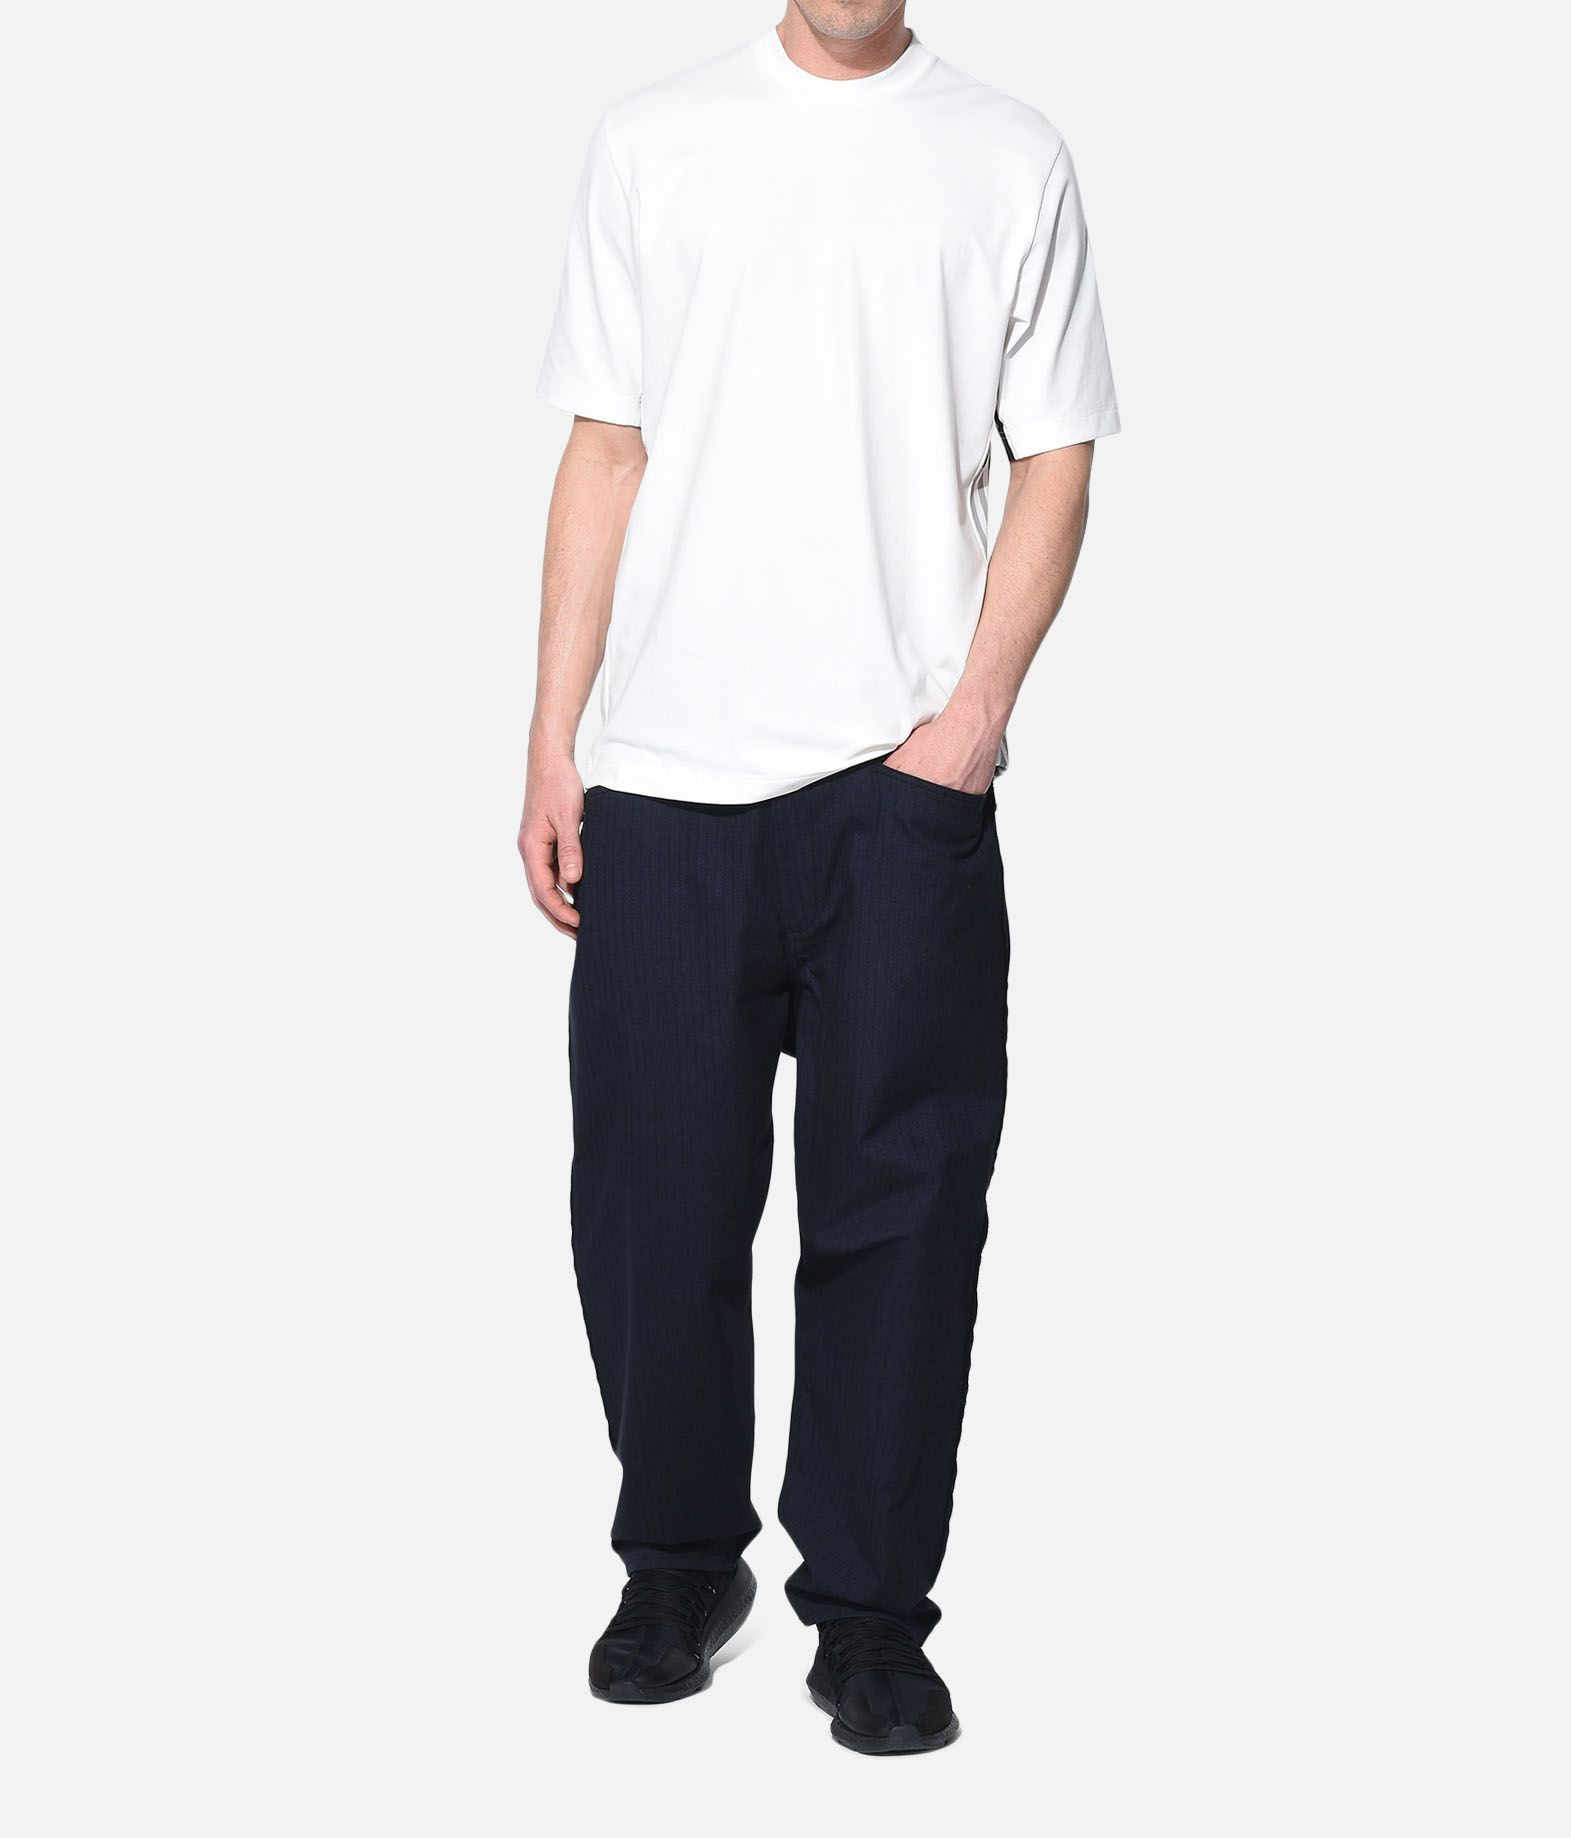 Y-3 Y-3 Herringbone Tailored Pants Dress pants Man a